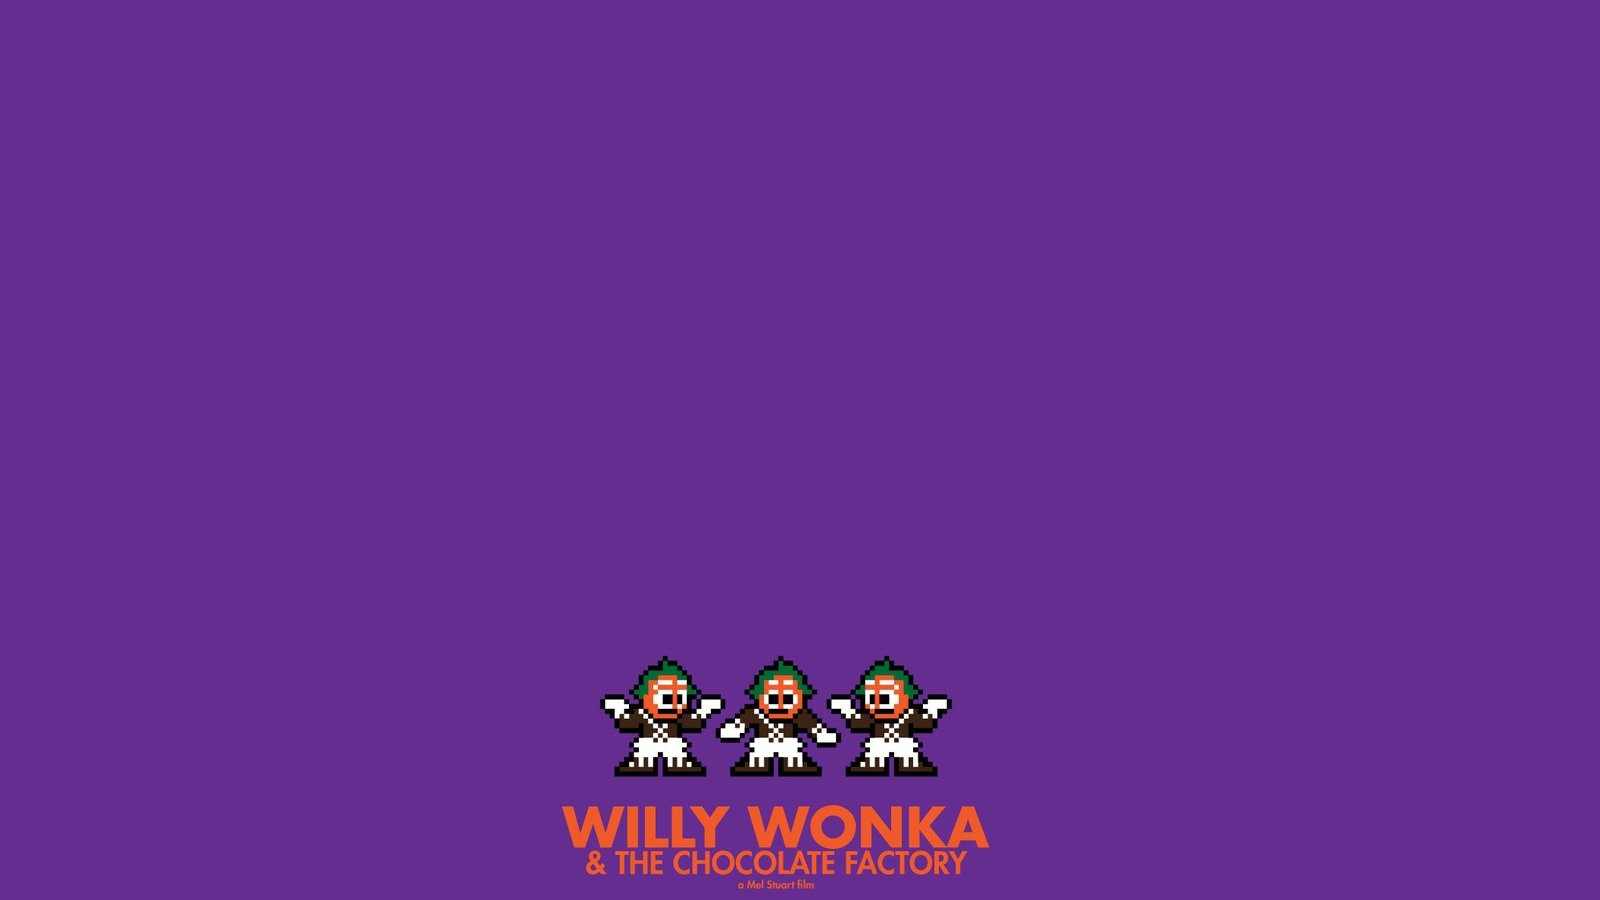 movies posters willy wonka chocolate factory 8 bit